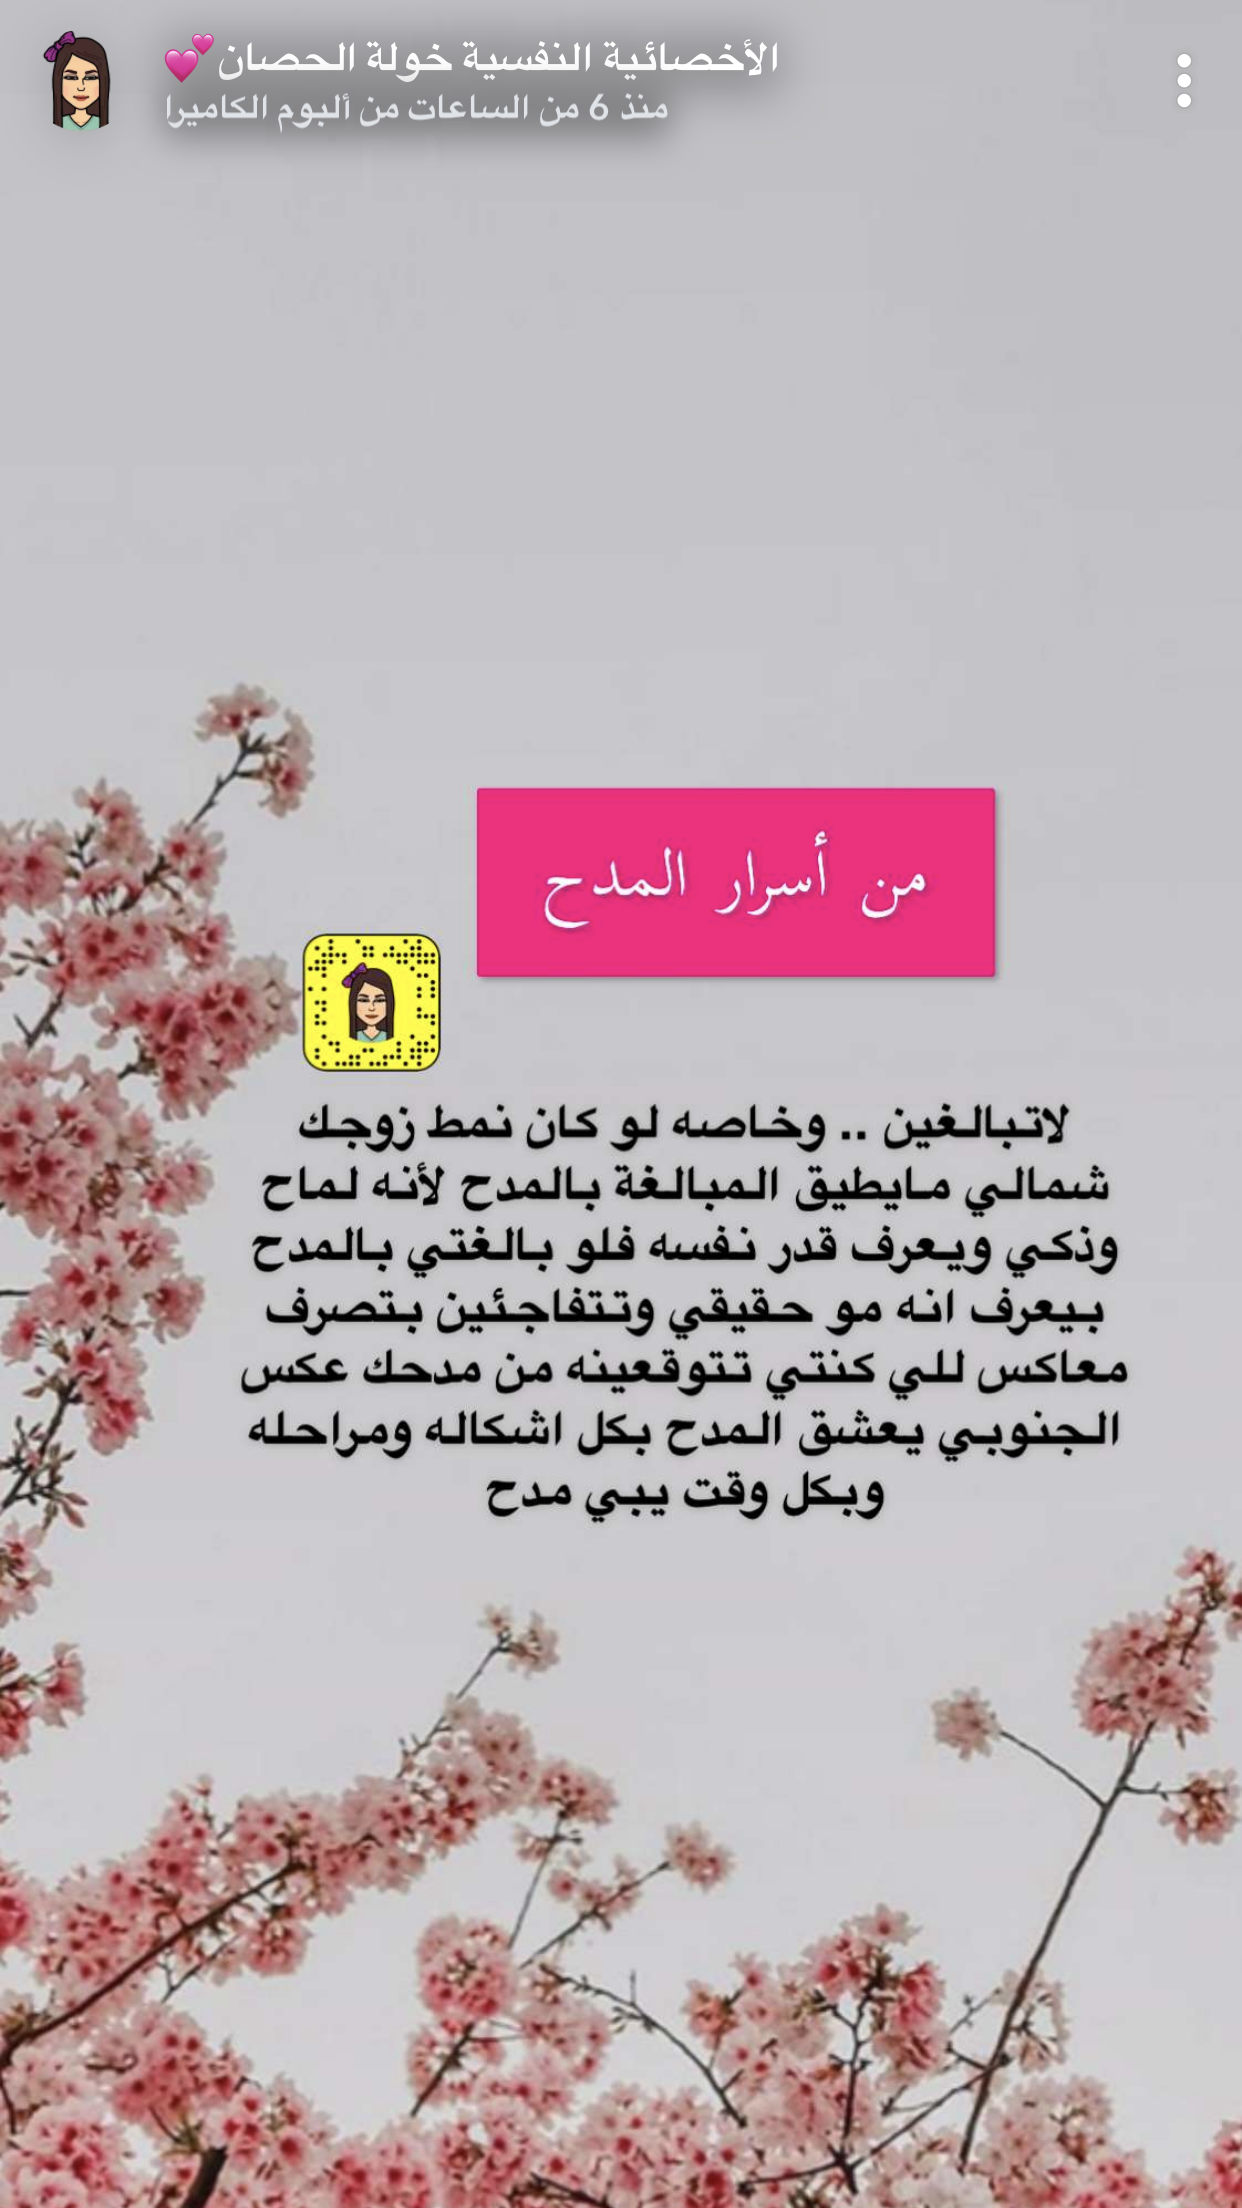 Pin By Sahar On فن المدح للزوج Etiquette And Manners Marriage Life Life Rules